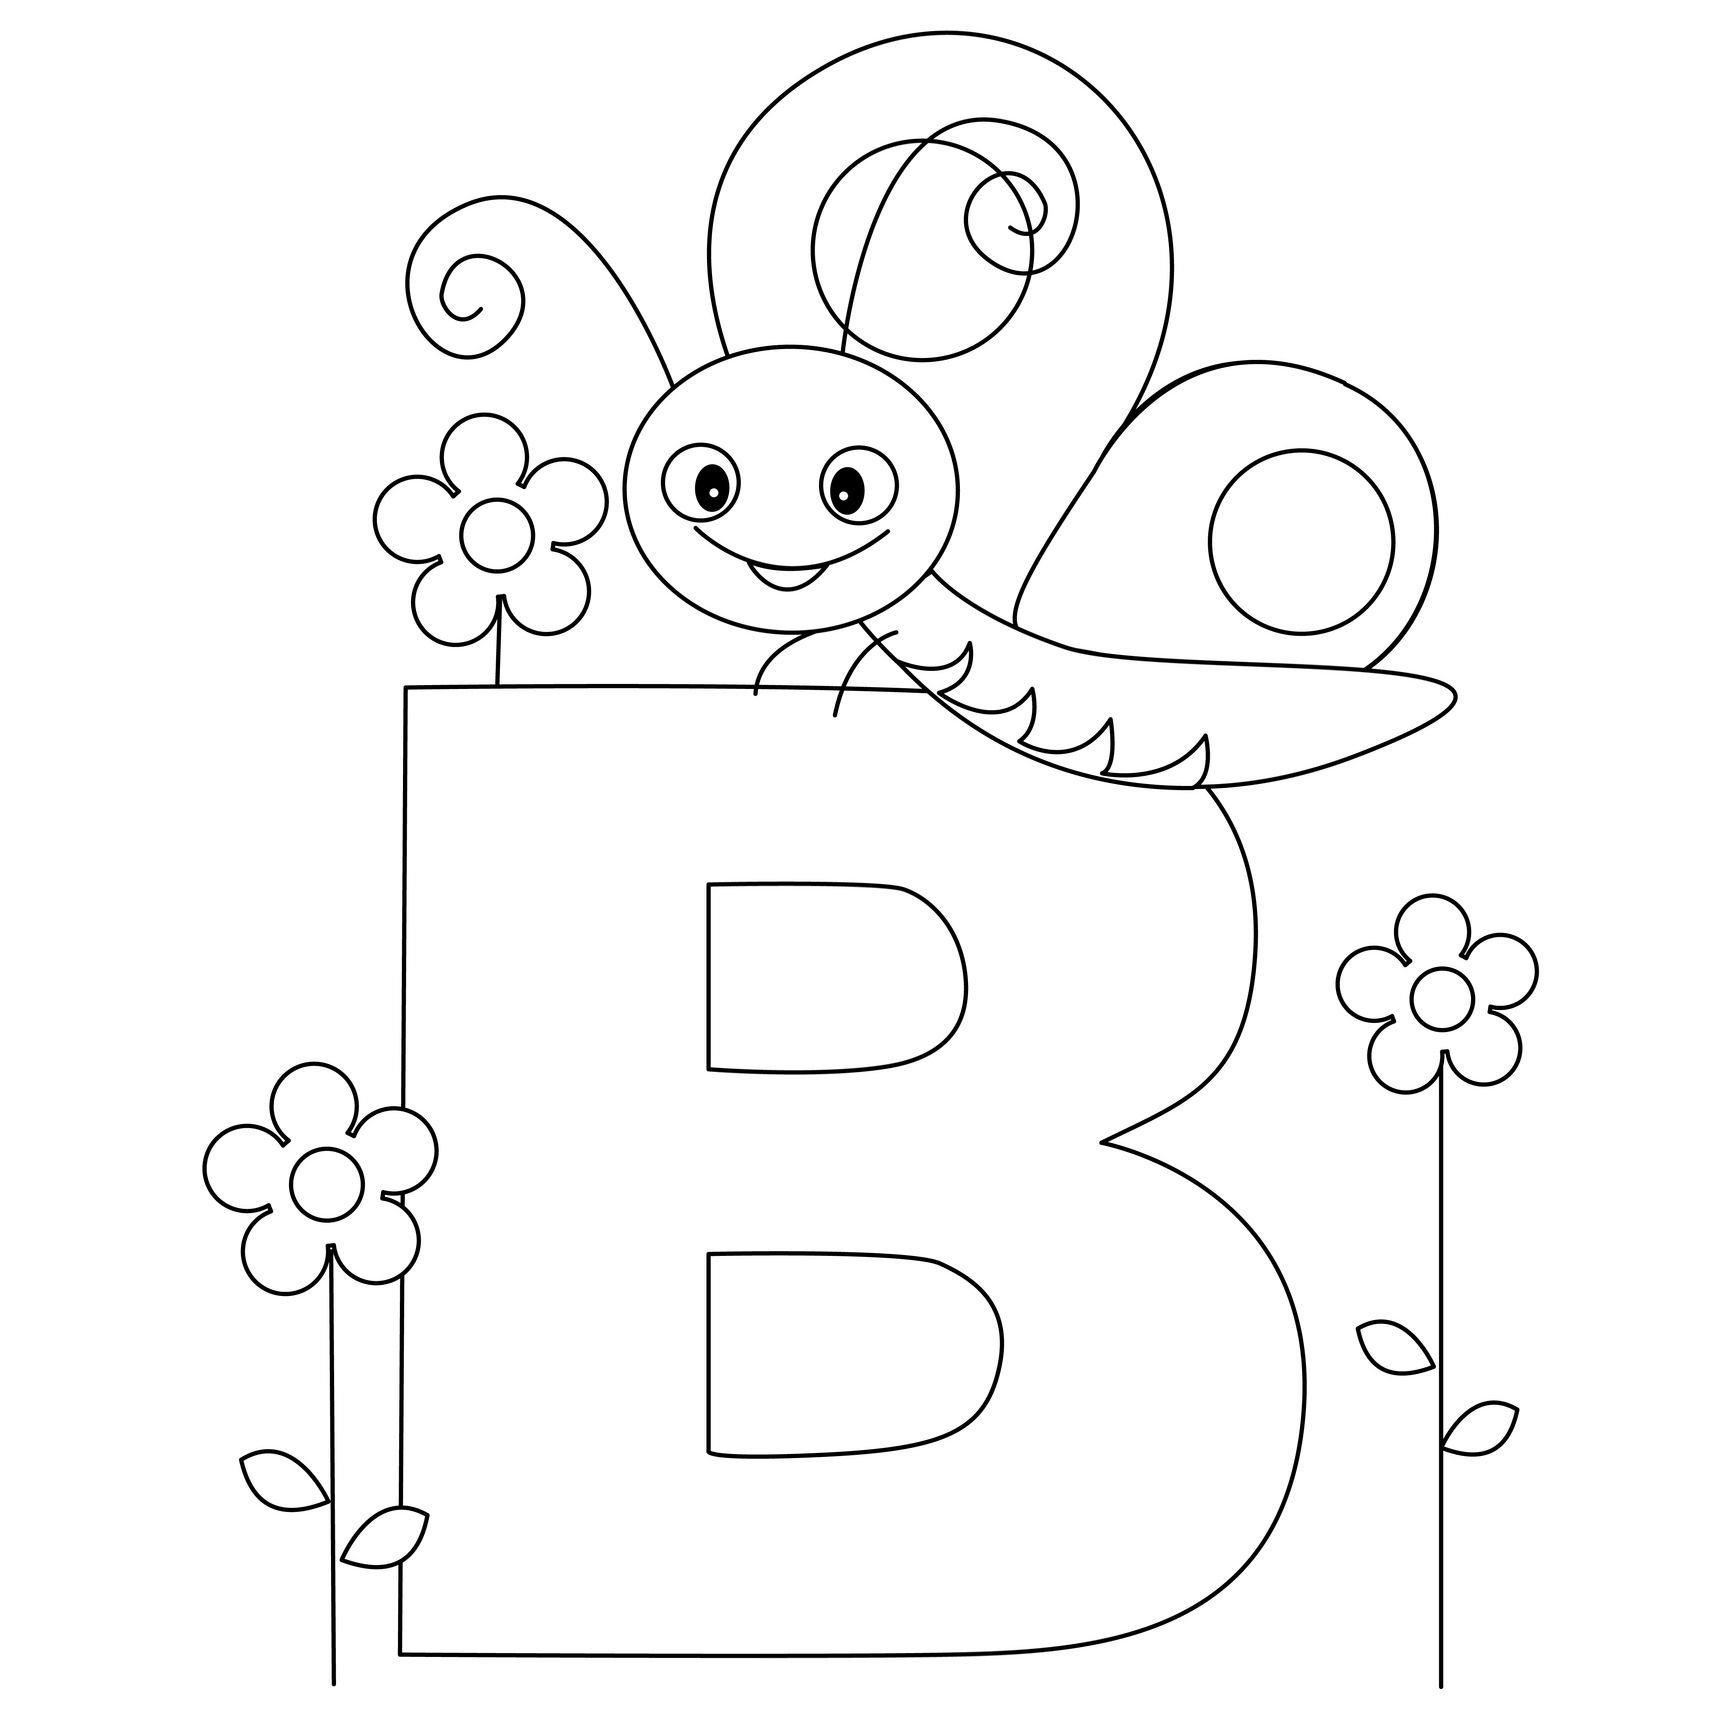 1732x1732 Animal Alphabet Letter B Is For Butterfly! Here's A Simple